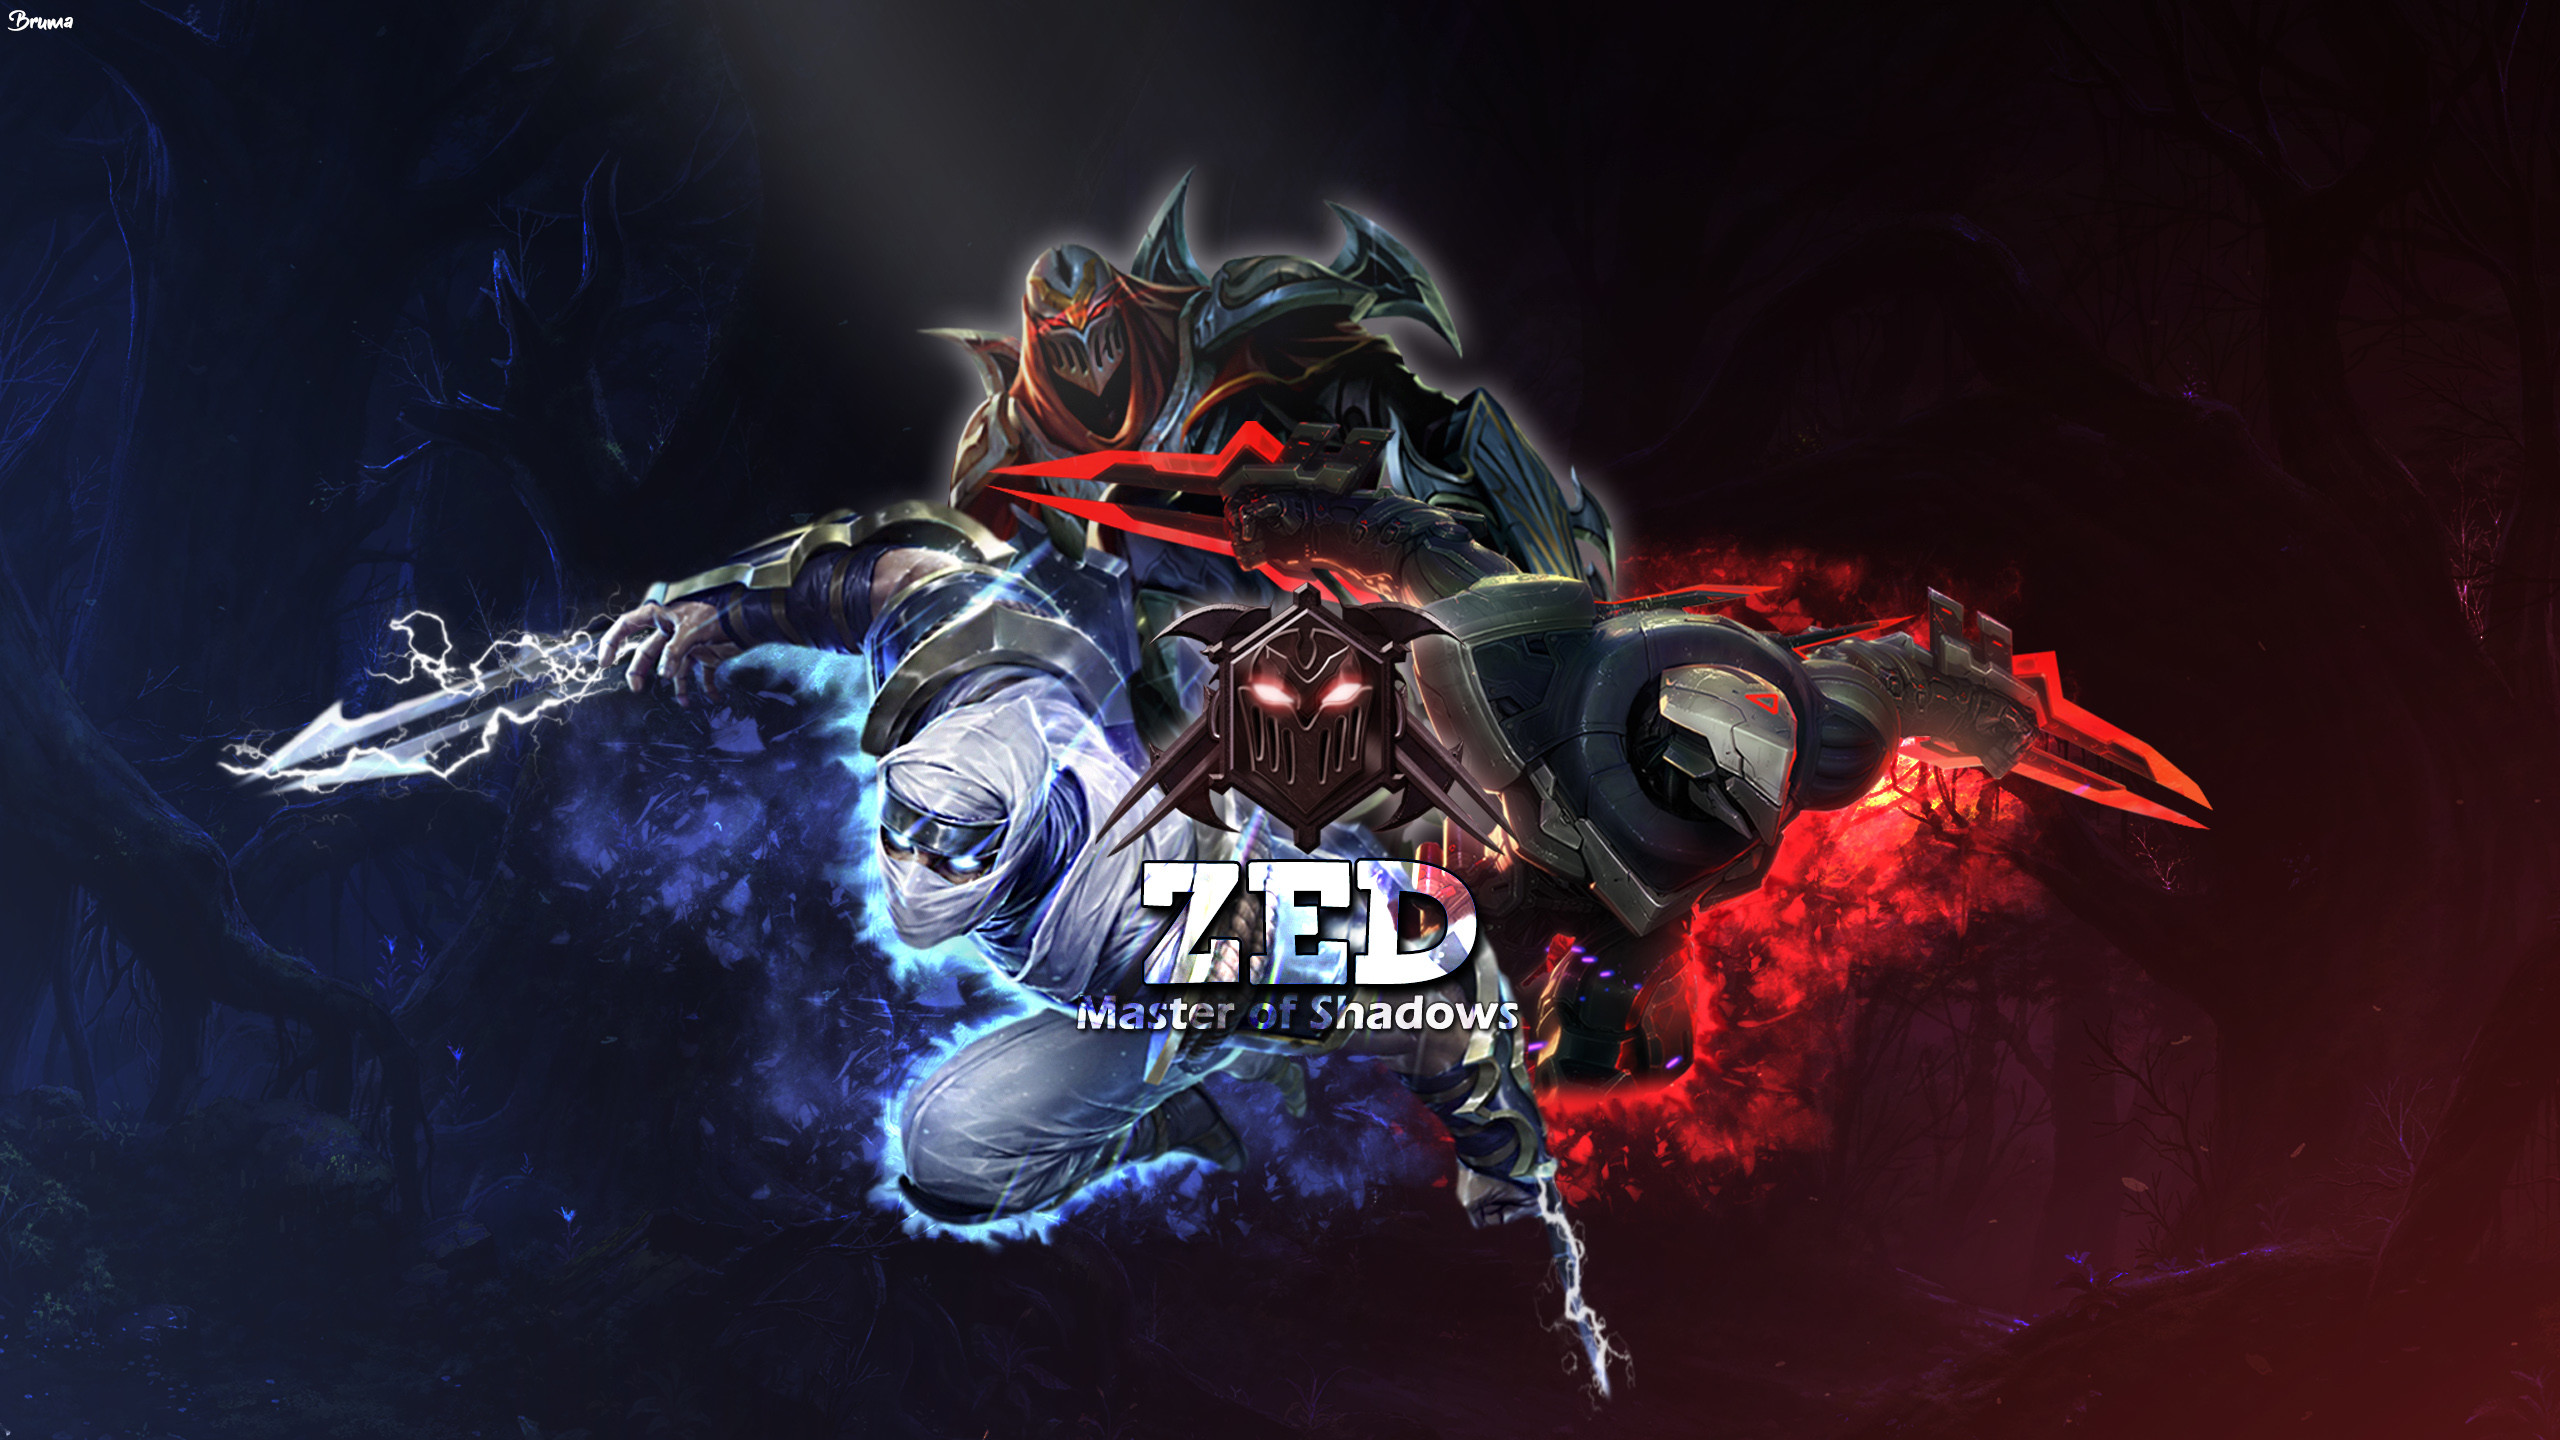 championship zed splash art